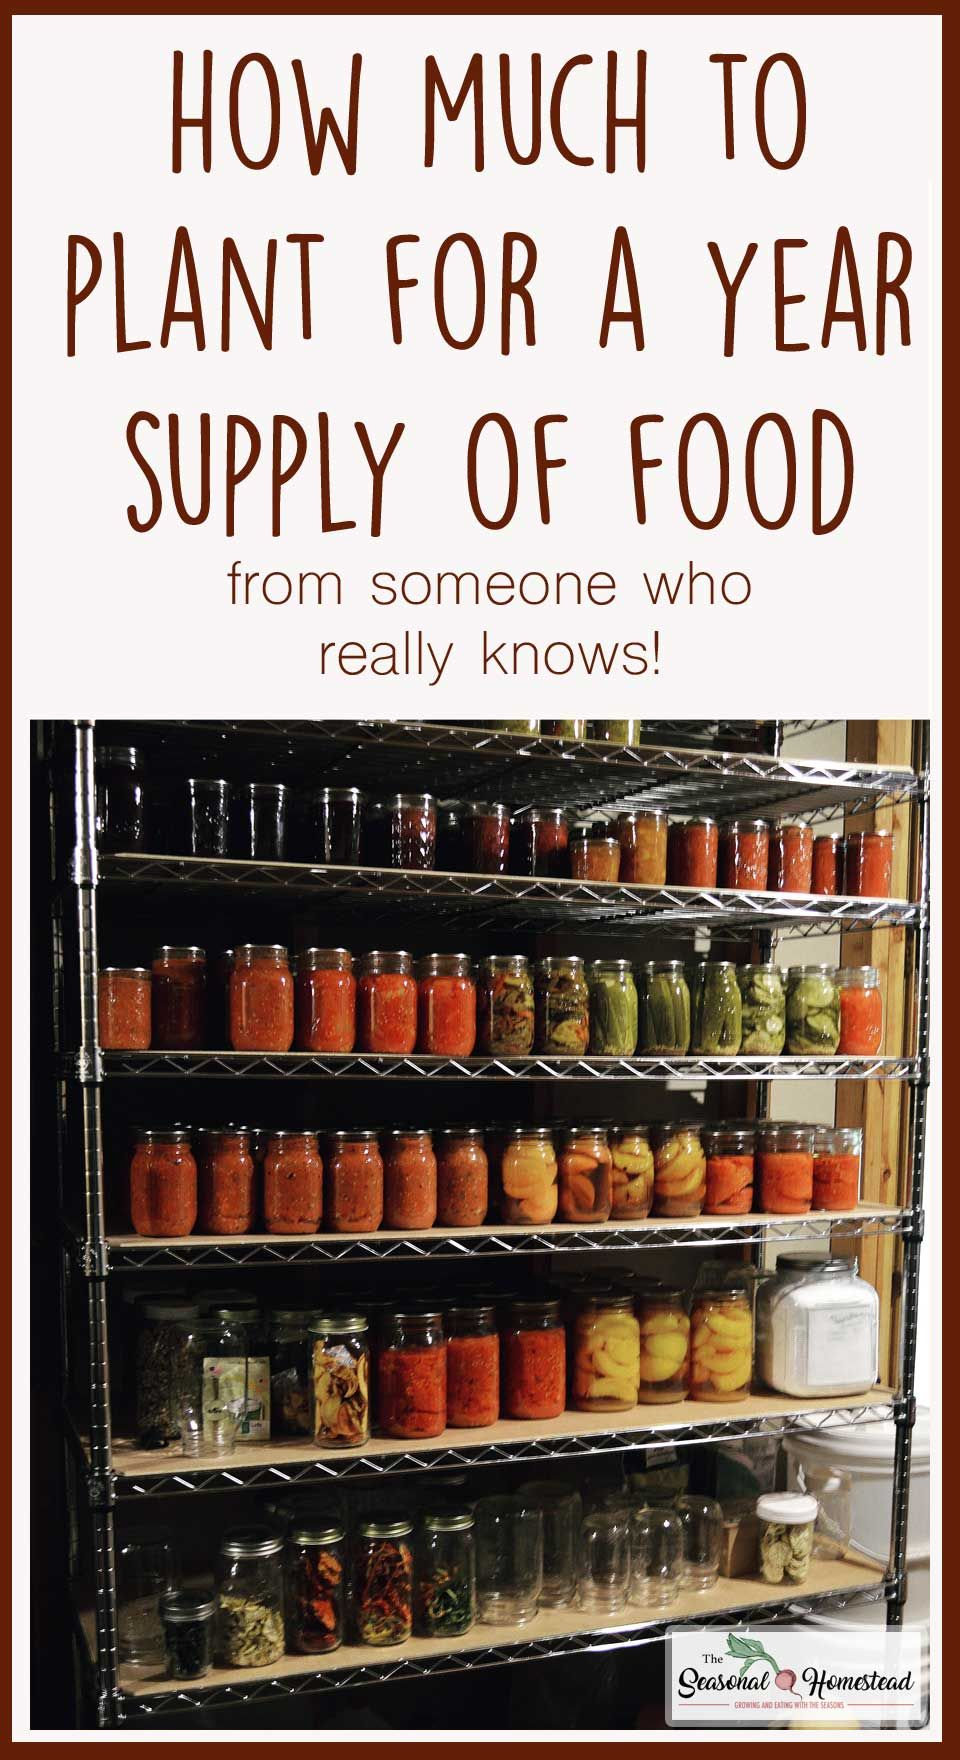 Learn how much you need to plant for a year supply of food for your family. Includes a free printable chart to help you on your way to self-sufficiency. Be self sufficient on as little as a quarter acre backyard garden!